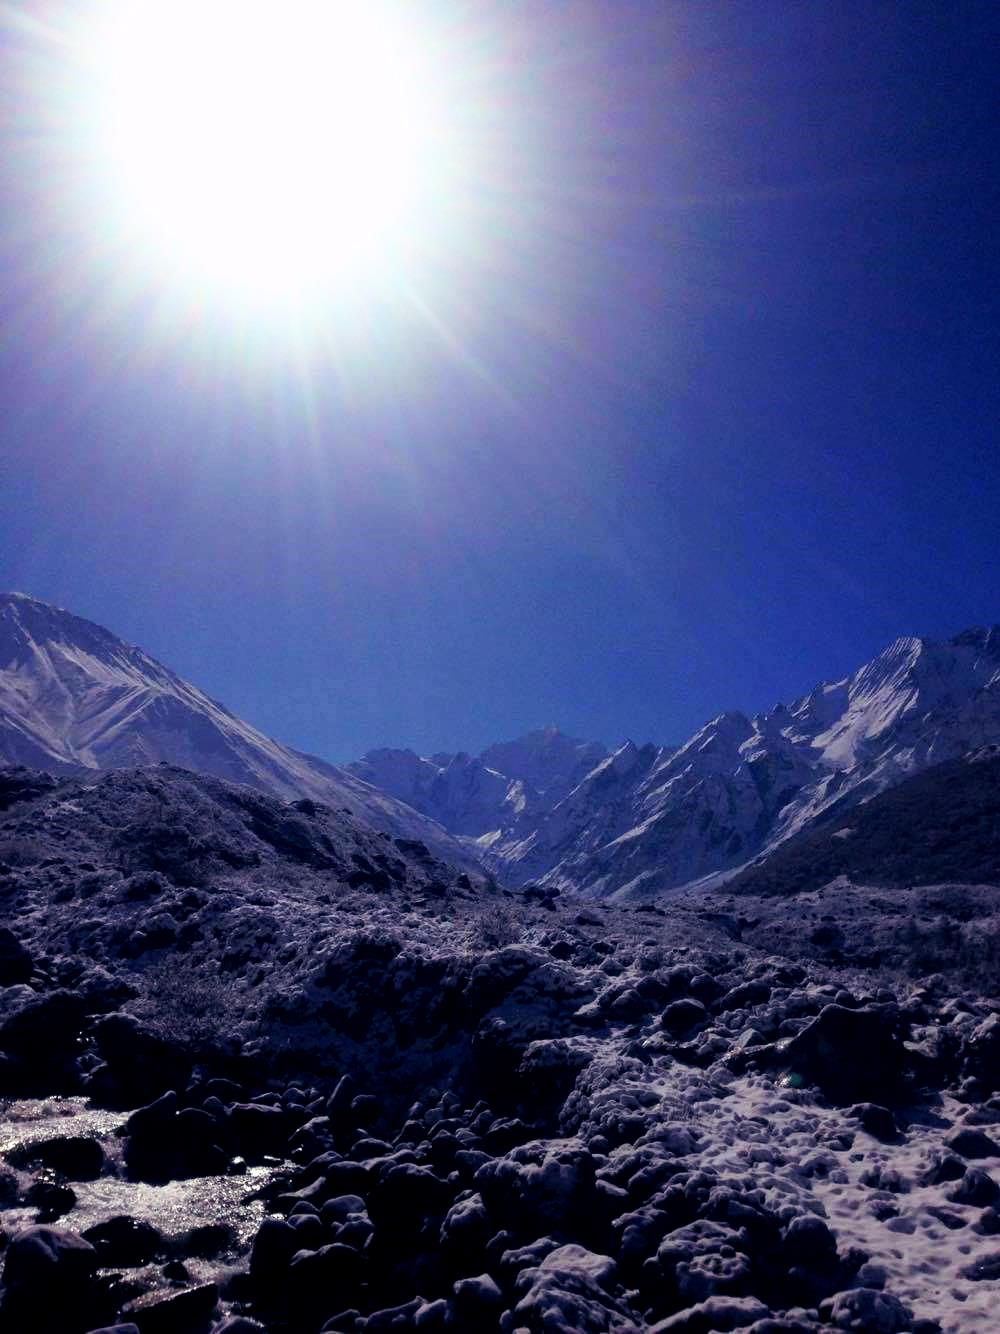 Langtang_Sun_is_shining_April_2016_Adventure_Alternative_Nepal.jpg